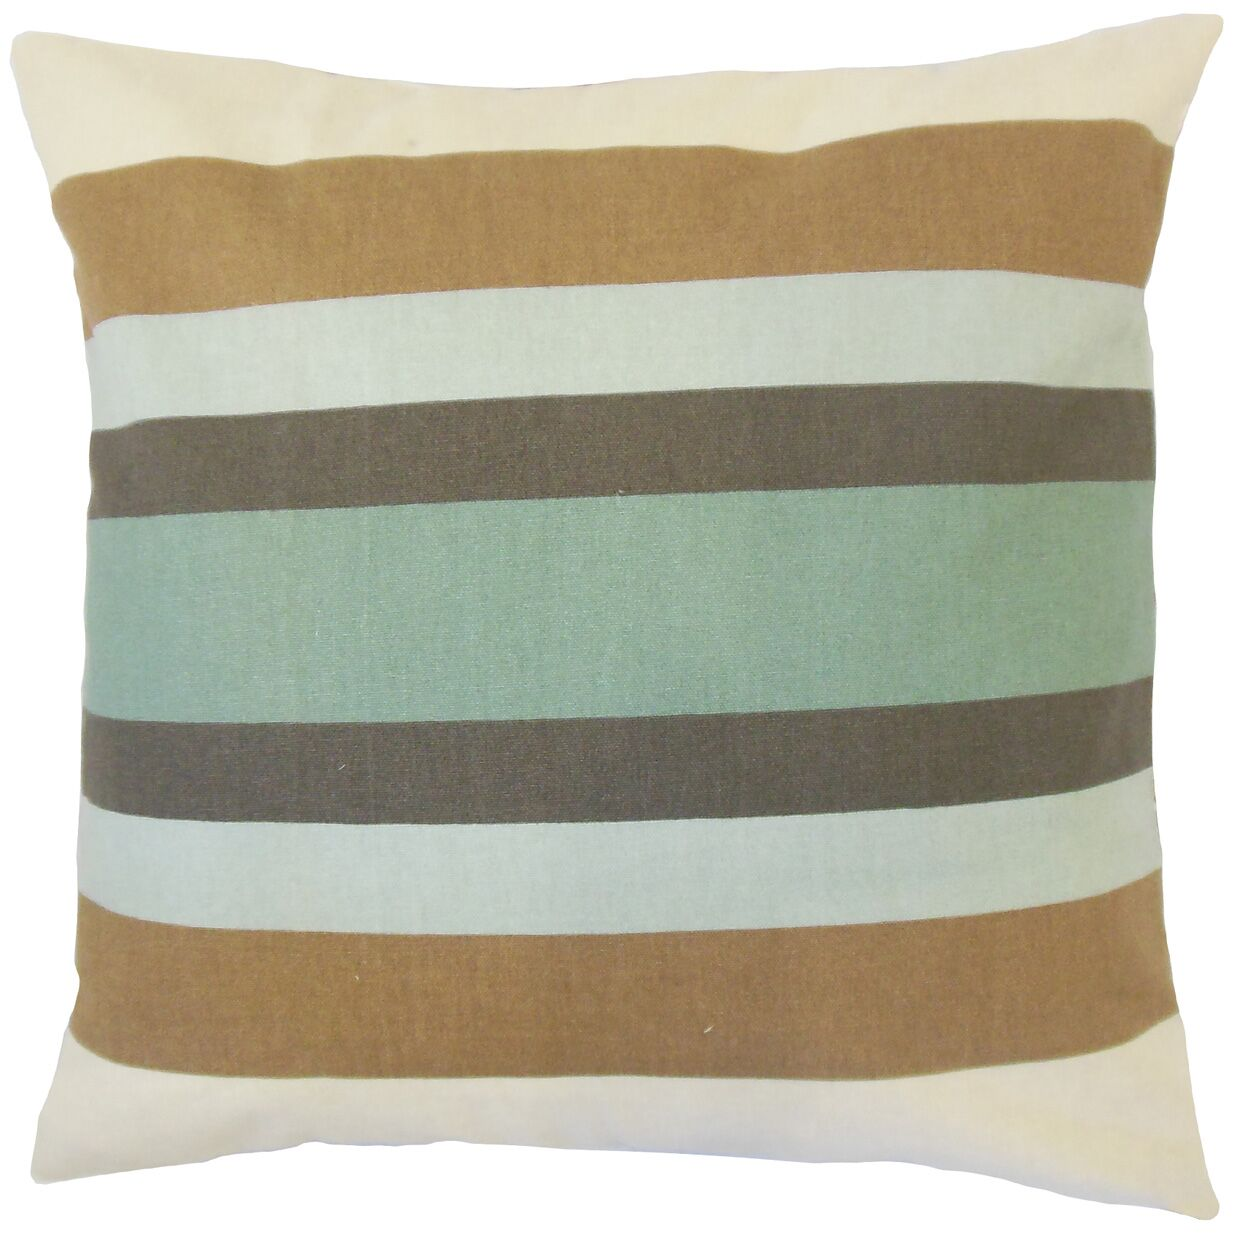 Gainell Stripes Bedding Sham Size: Euro, Color: Truffle